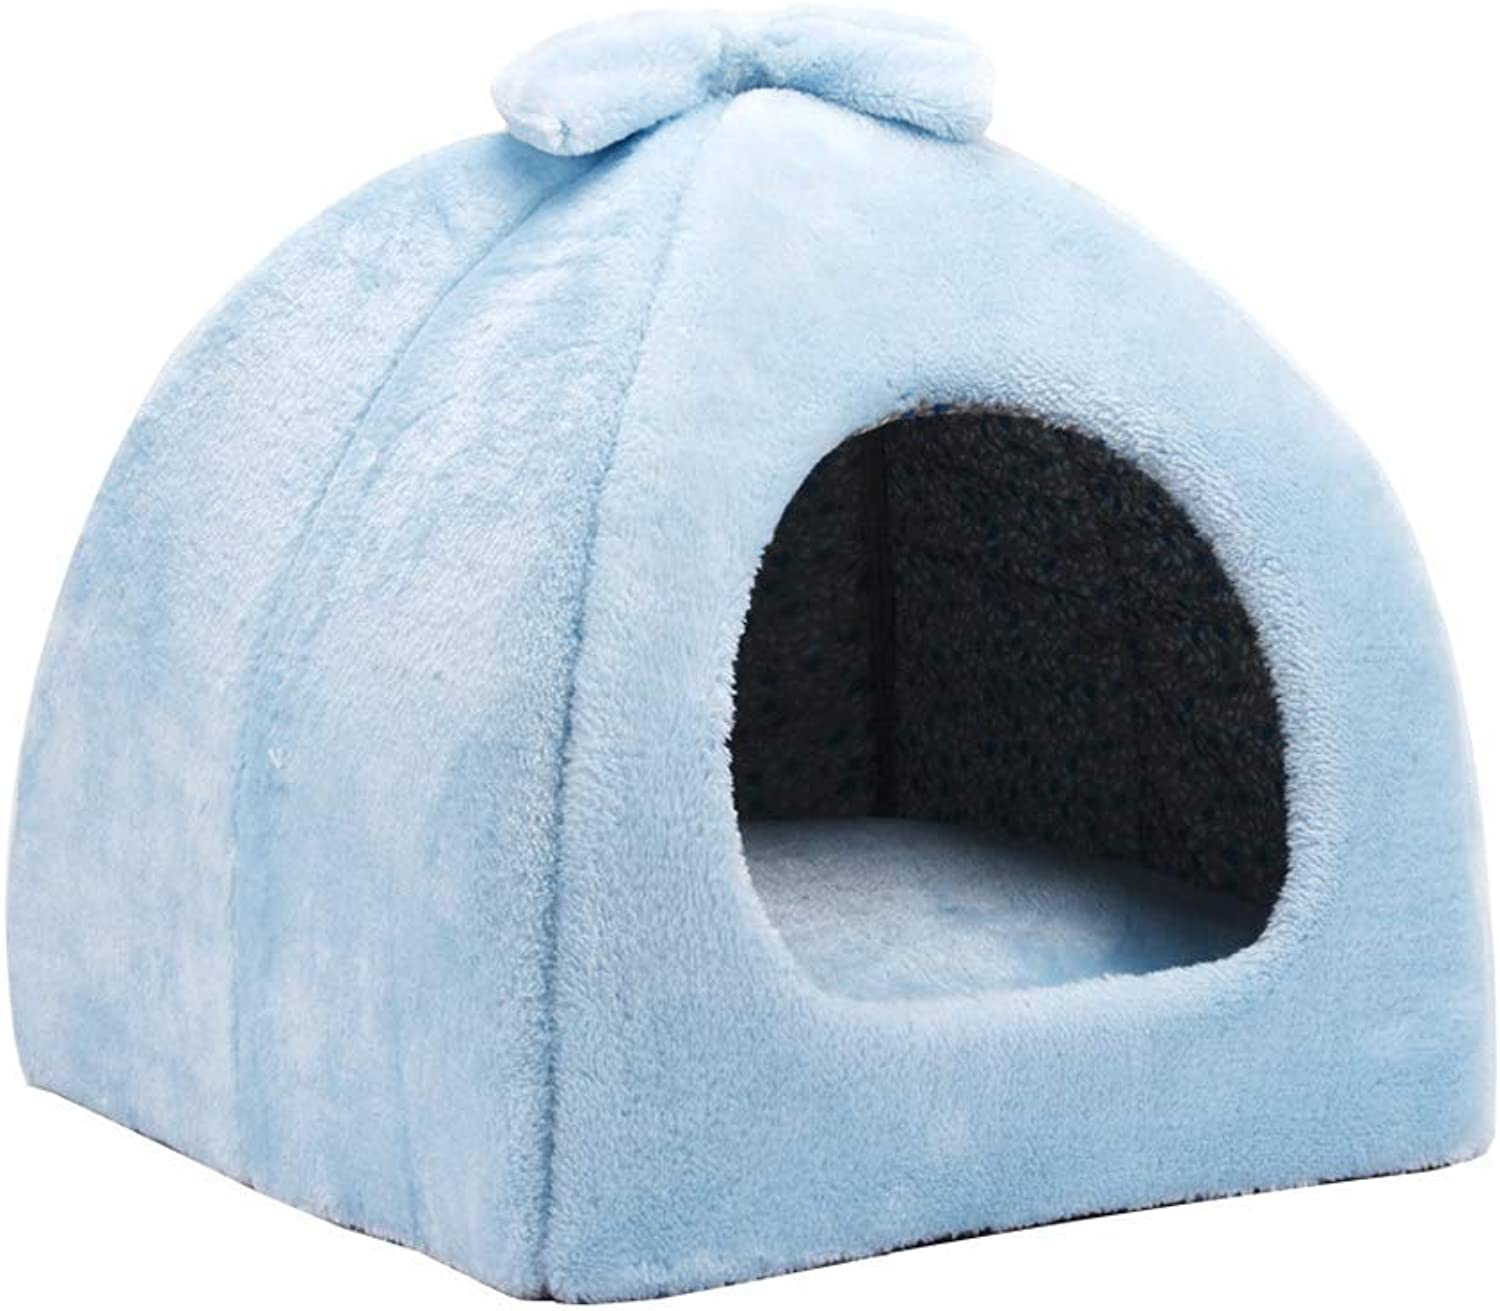 HeiPlaine Pet Sofa 2 In 1 Deep Sleep Cat Dog Pet Nest Small Dog Kennel Cat Litter Winter Warm PP Cotton Filled Pet House (color   bluee, Size   Large)